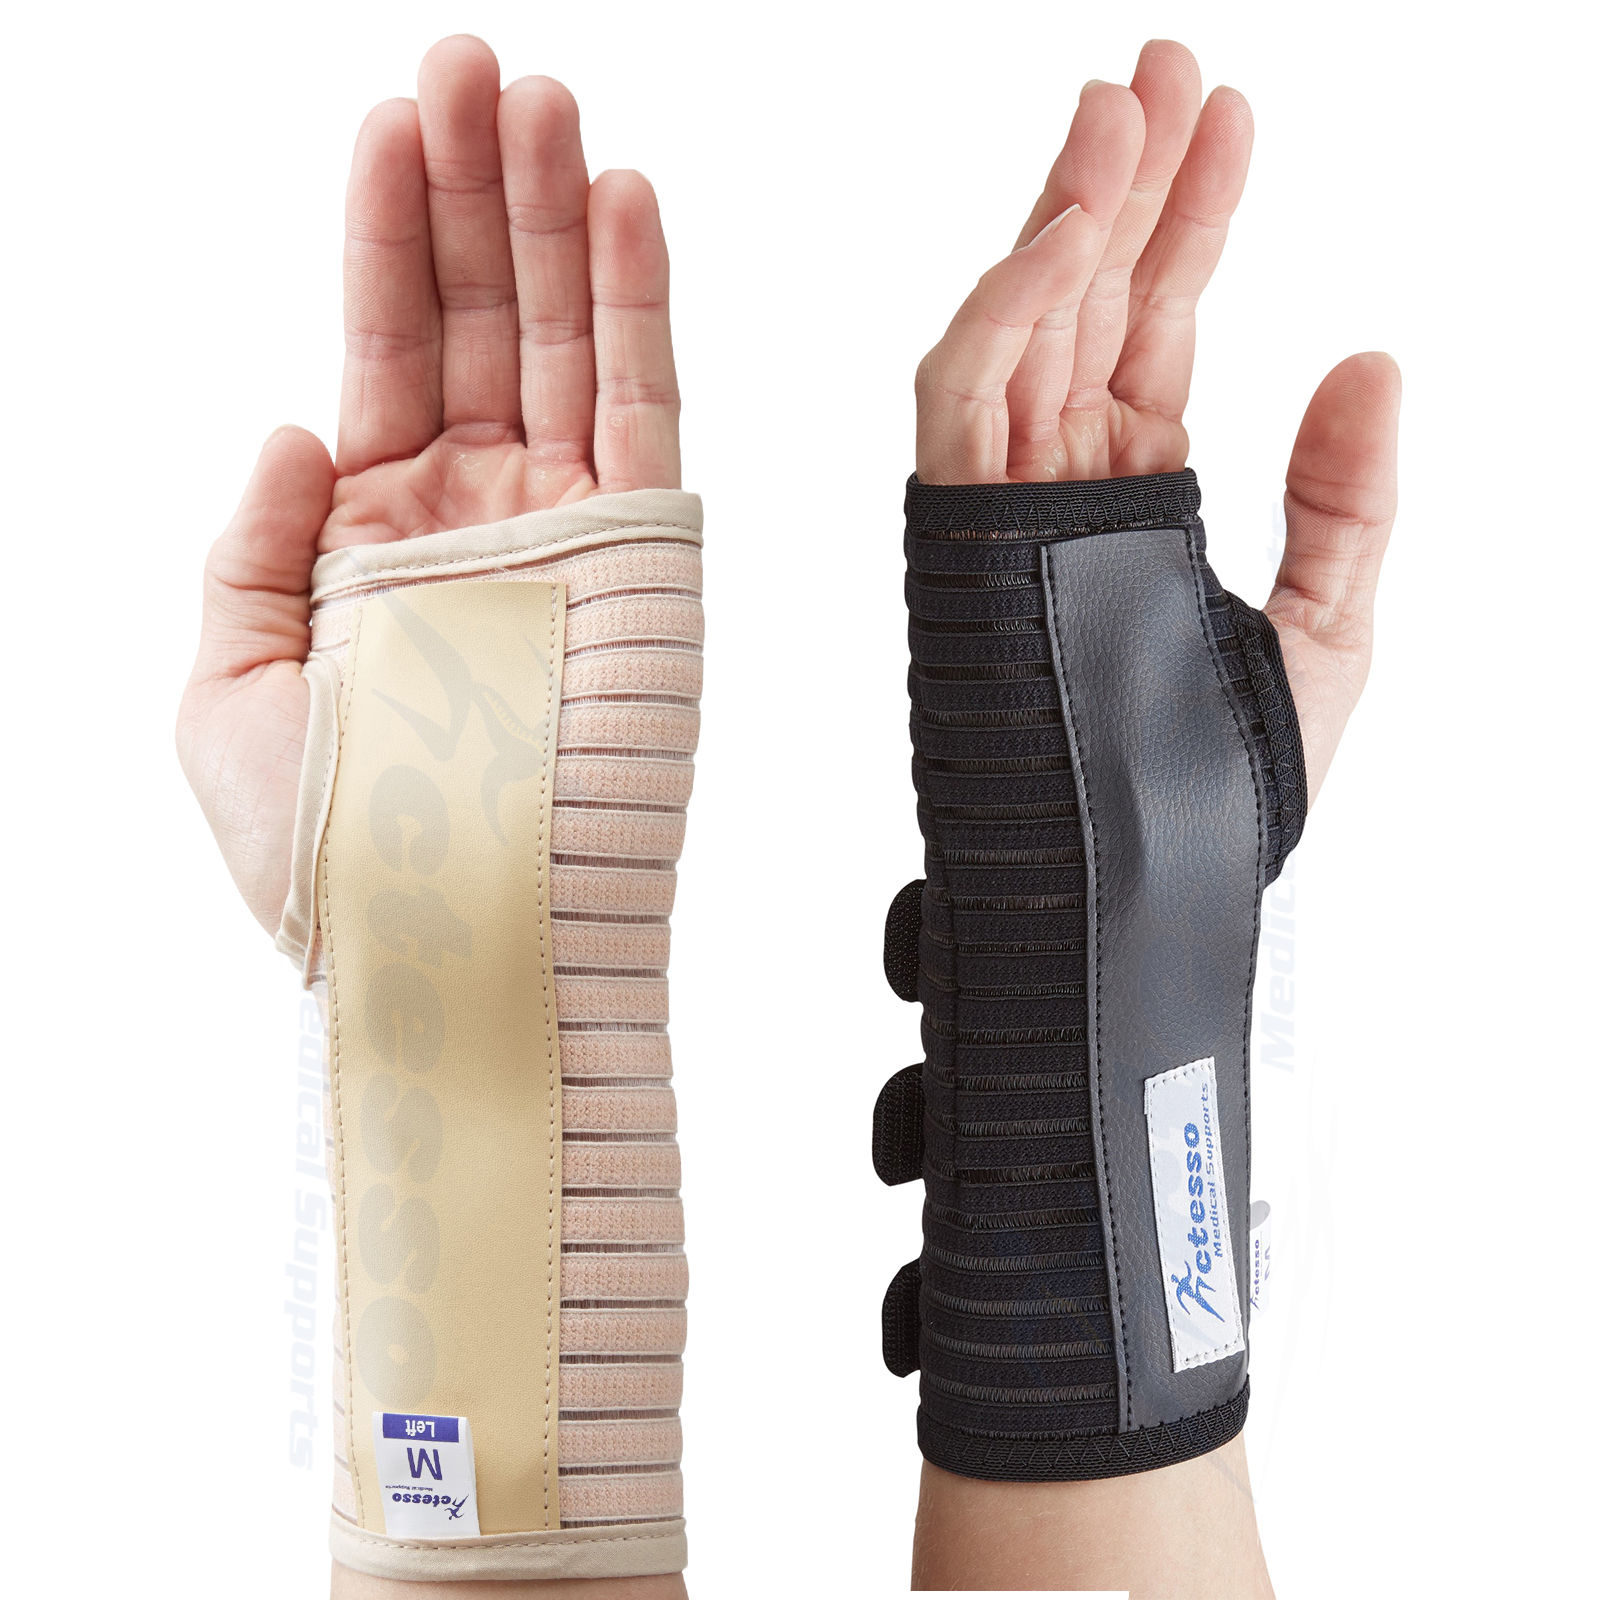 Actesso breathable wrist support brace splint carpal tunnel syndrome beige black